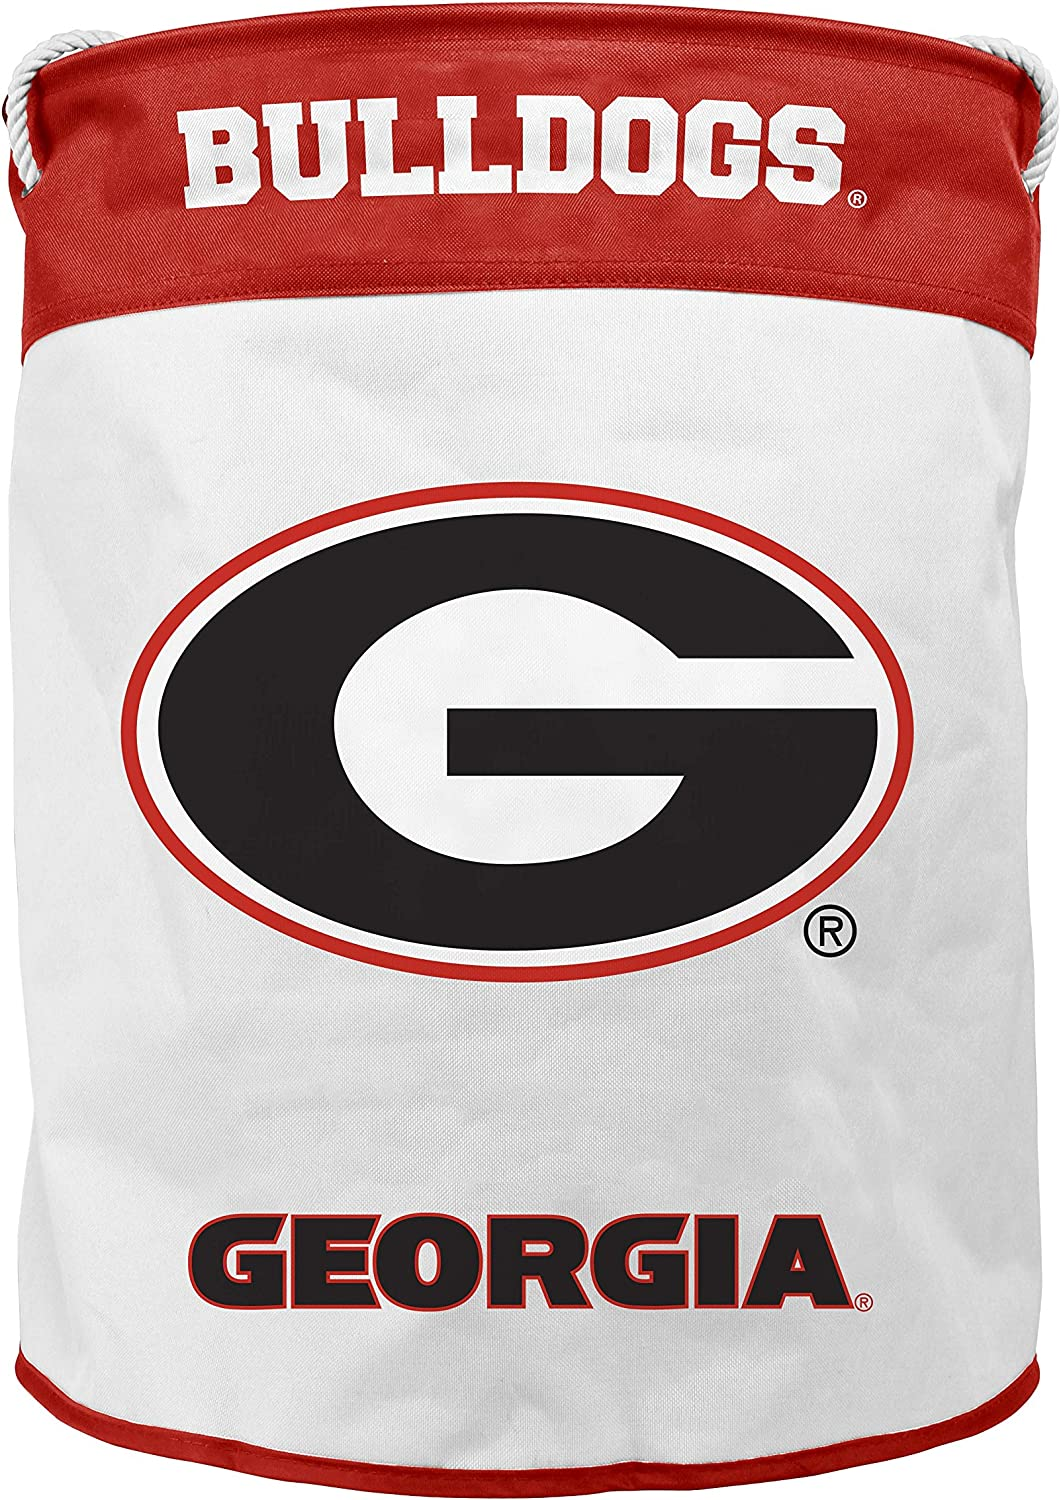 NCAA Georgia Bulldogs Canvas Laundry Basket with Braided Rope Handles